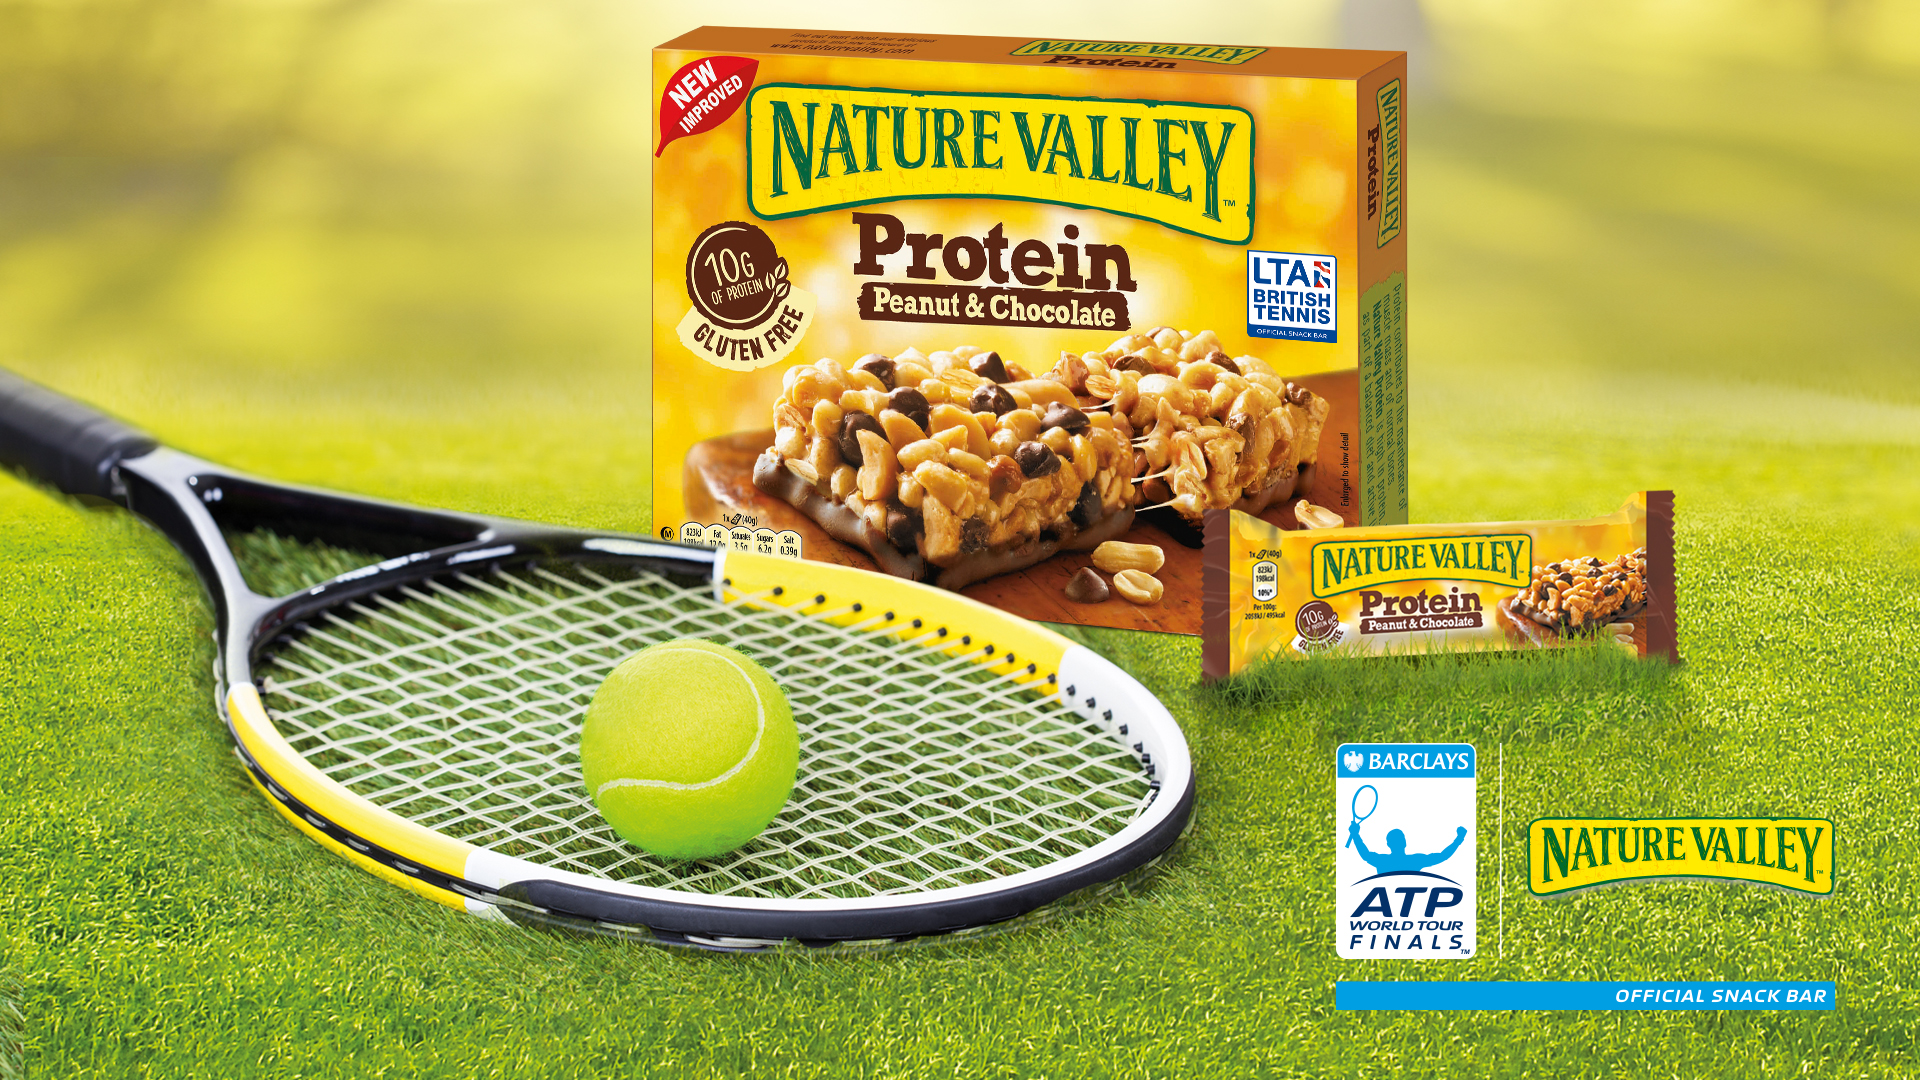 Nature Valley nets deal with Barclays ATP World Tour Finals